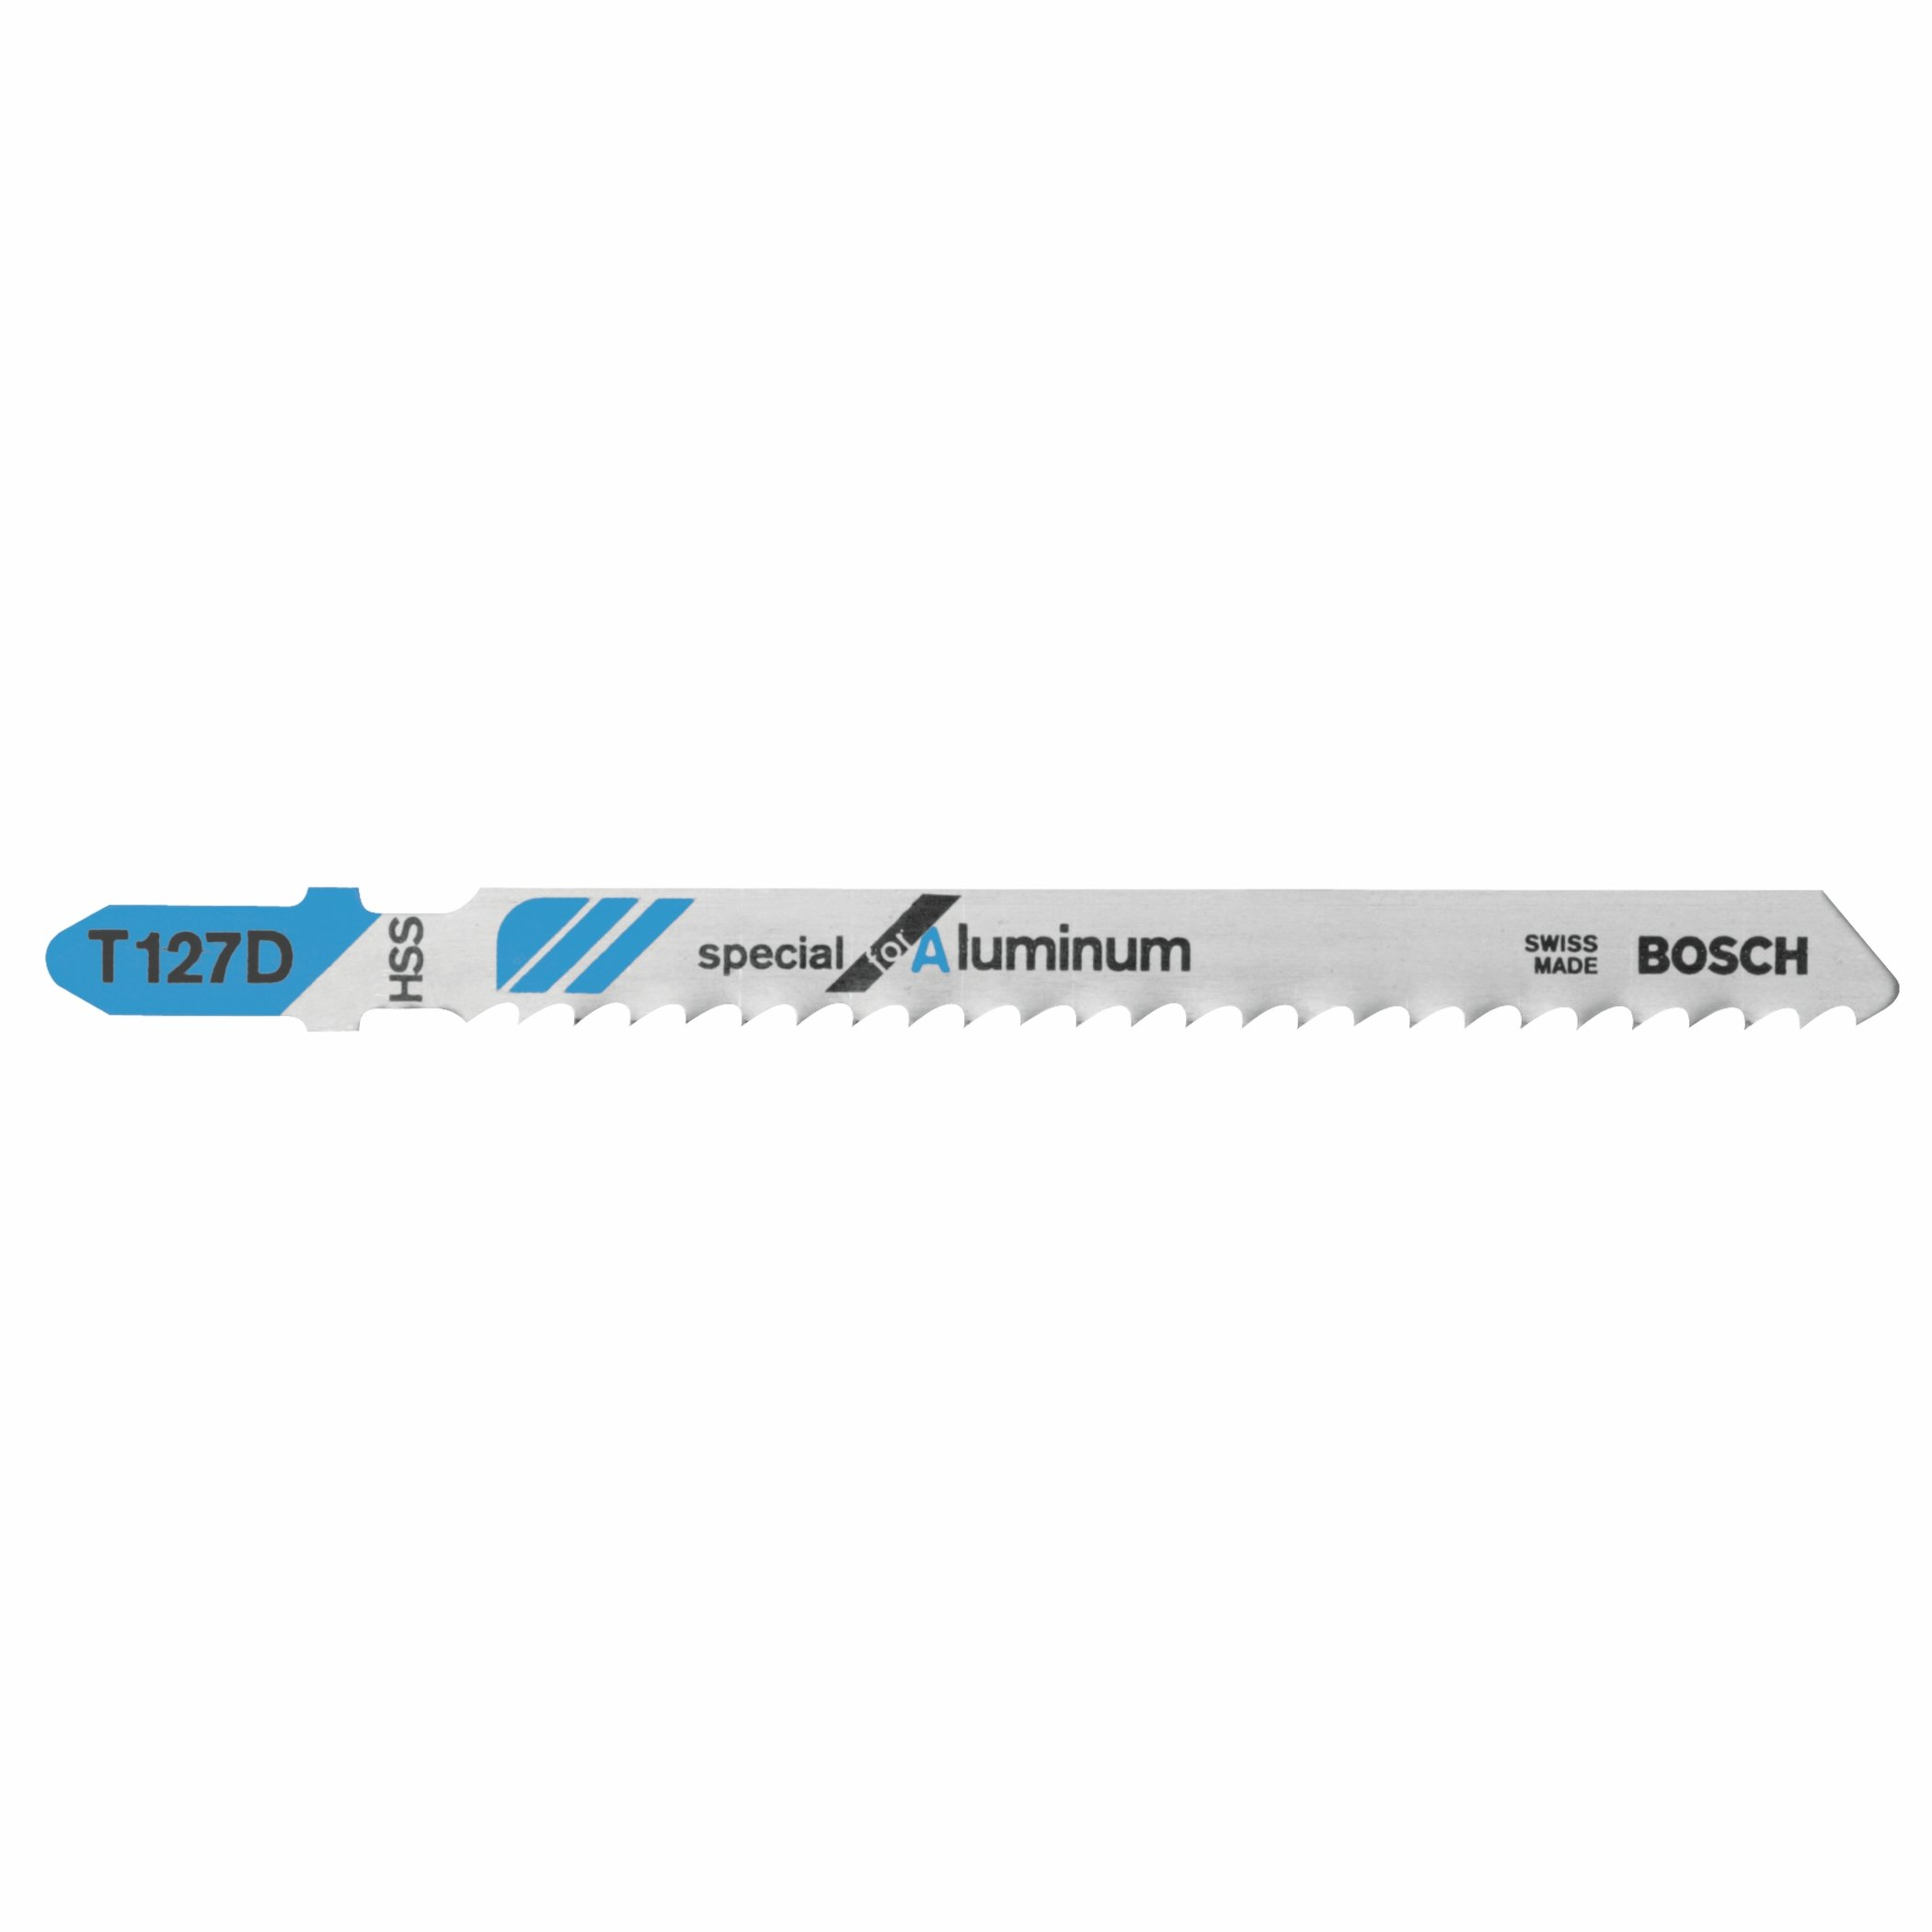 Bosch T127D100 100 pieces 4 In. 8 TPI Special for Aluminum T-Shank Jig Saw Blades by Bosch